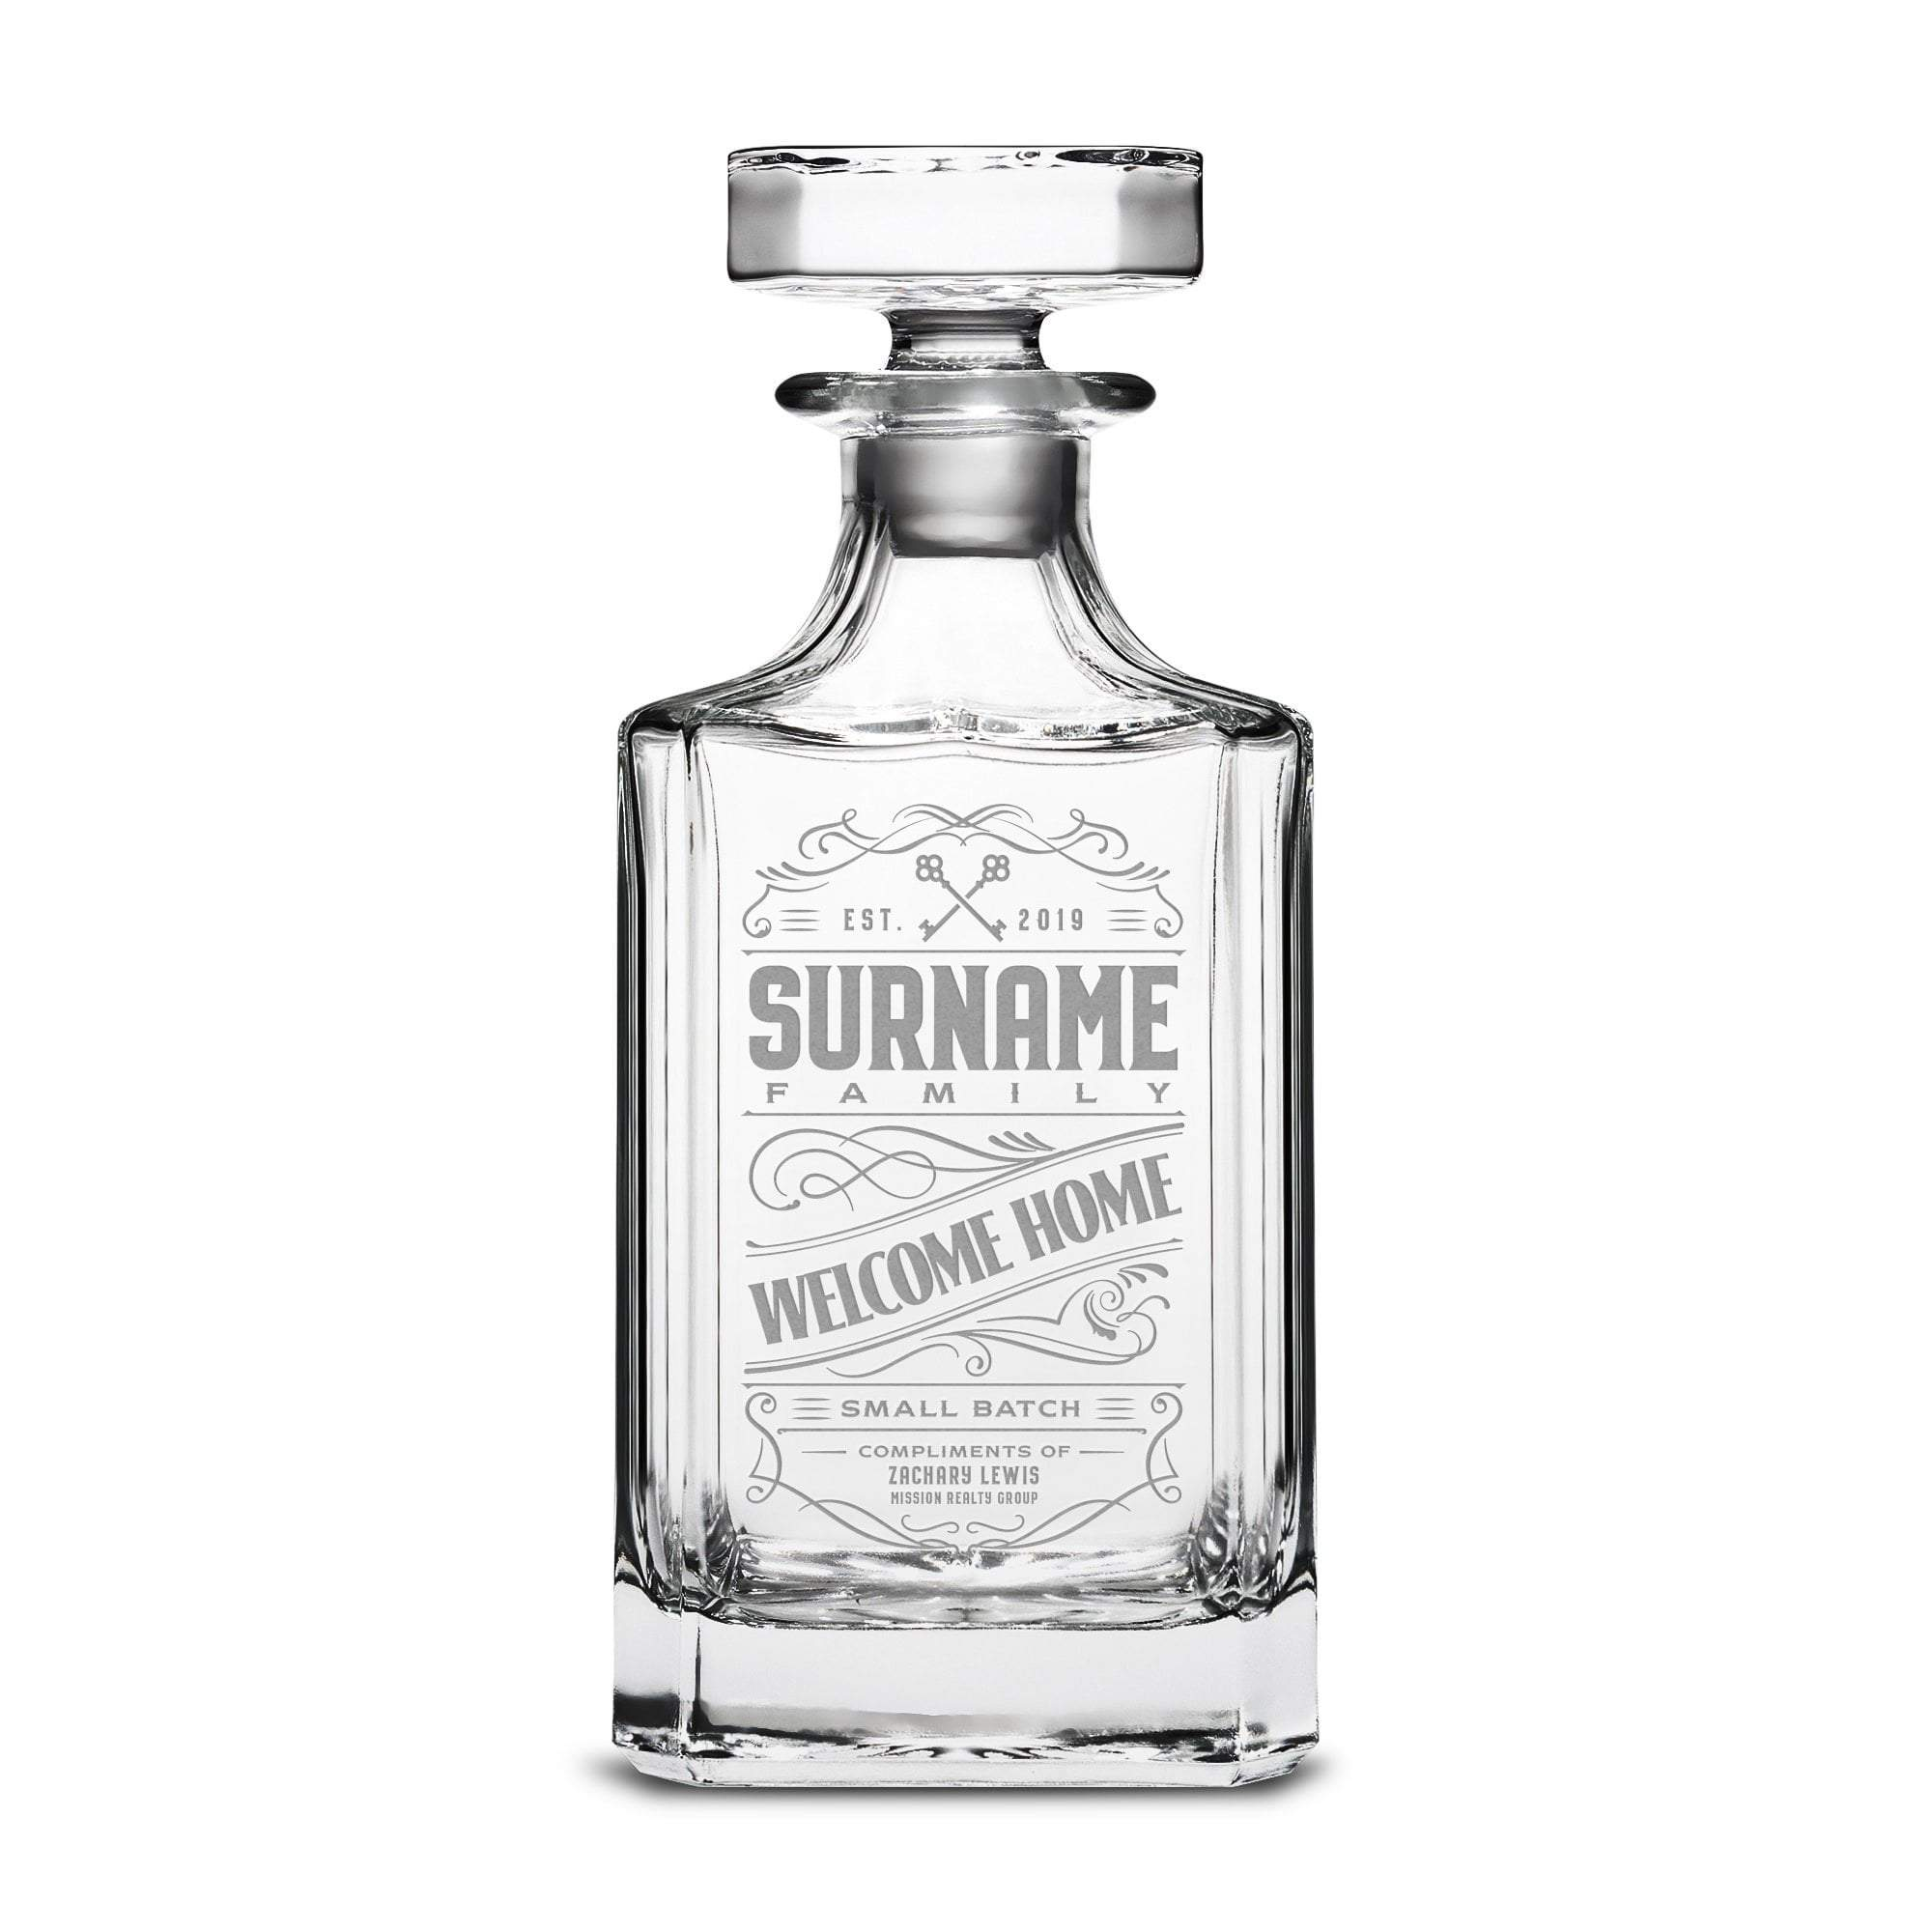 Welcome Home Custom Etched Refillable Diamond Decanter, 750mL Integrity Bottles